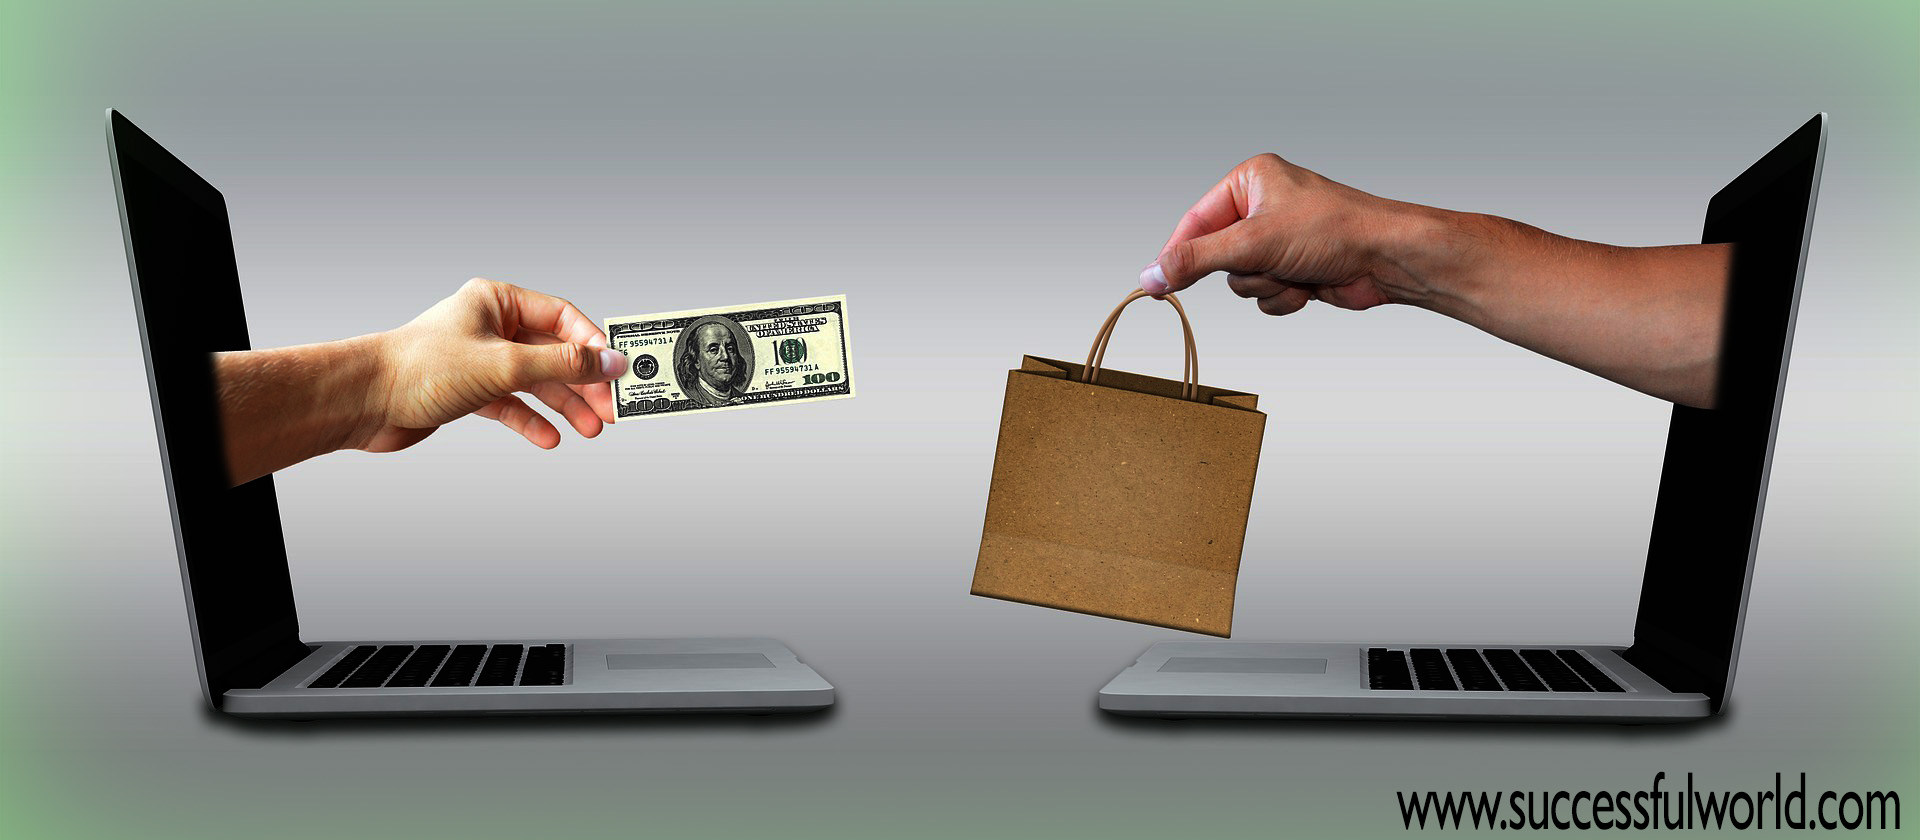 image of an online store